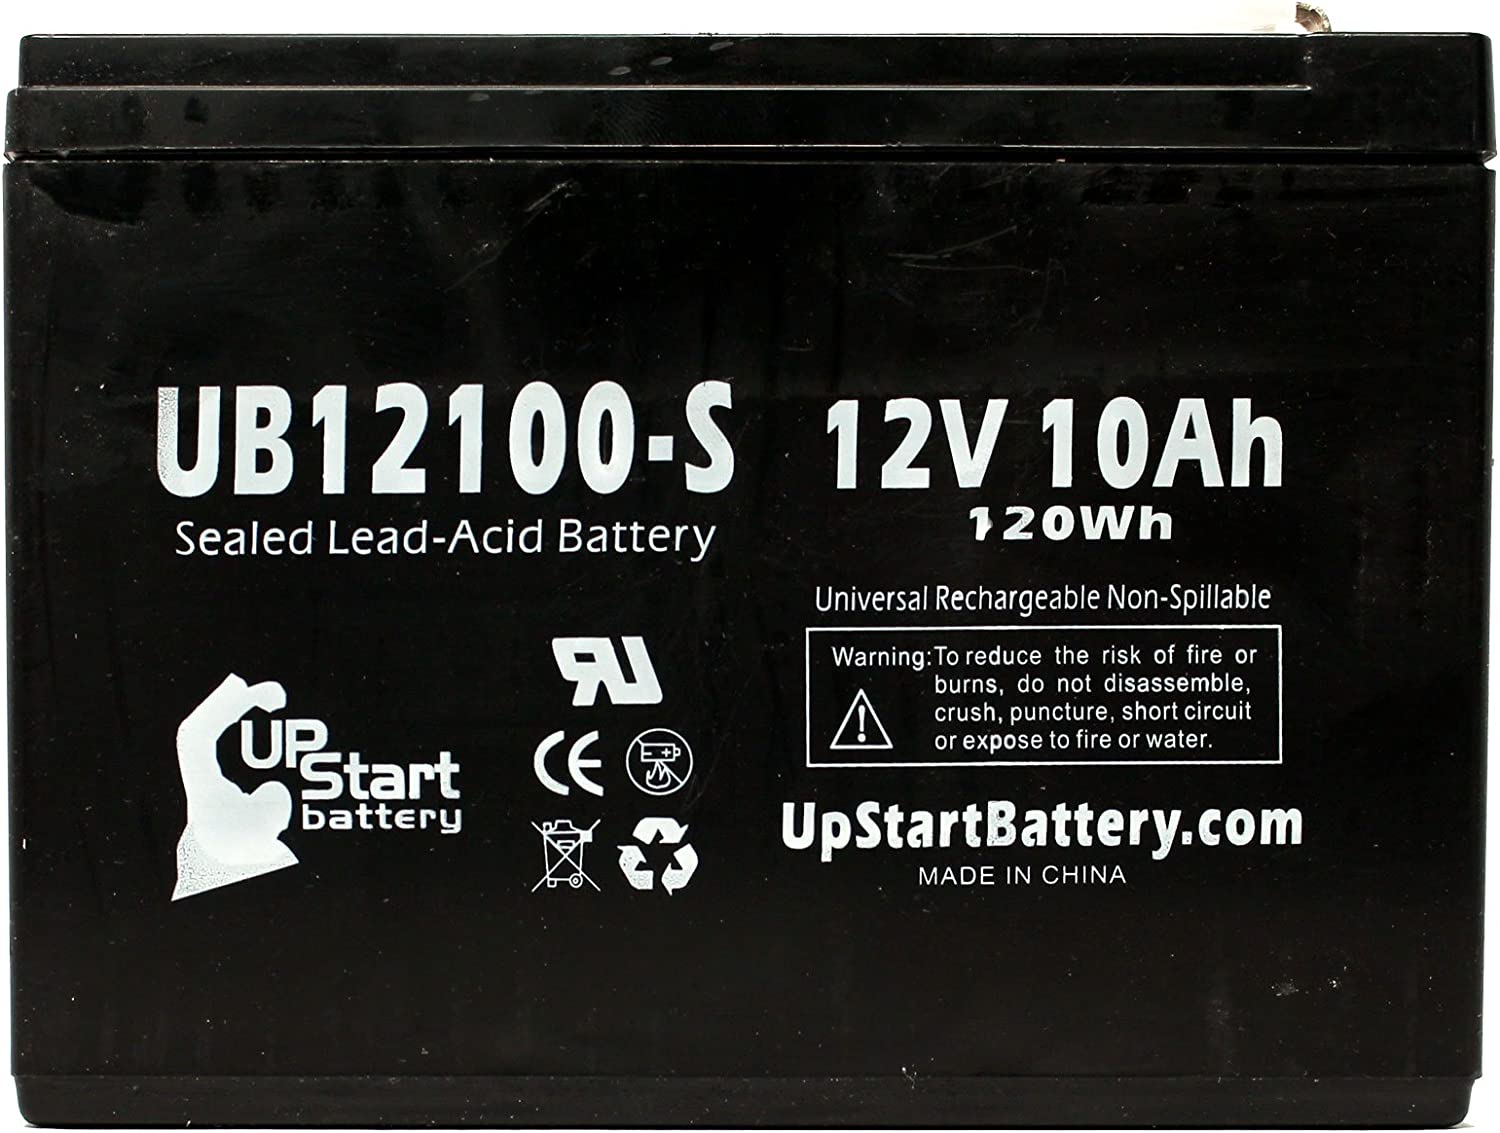 4 Pack Replacement for Neuton Mowers CE6 Battery Replacement UB12100-S Universal Sealed Lead Acid Battery 12V, 10Ah, 10000mAh, F2 Terminal, AGM, SLA